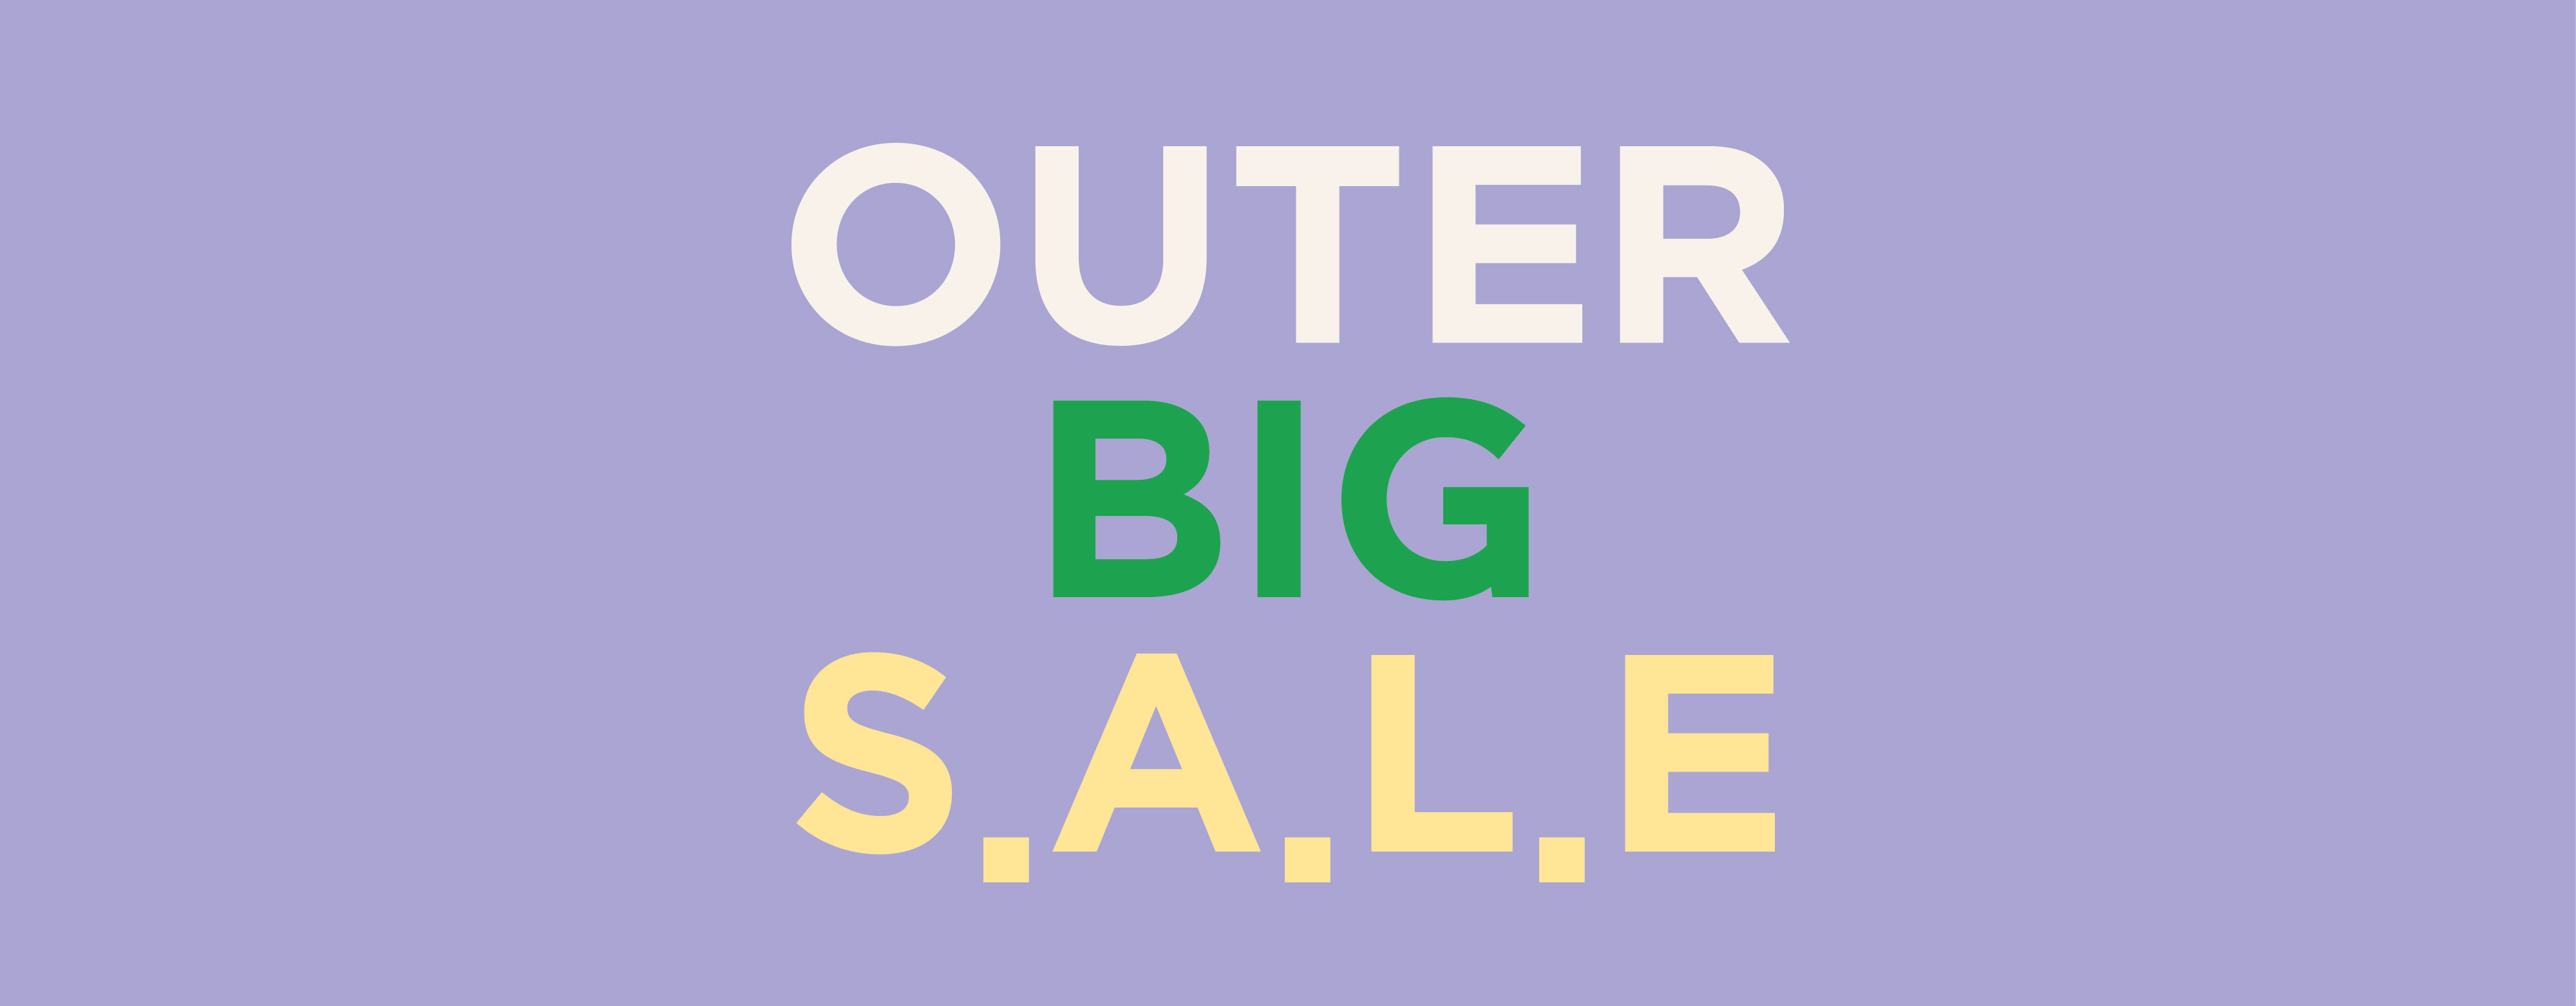 OUTER BIG SALE